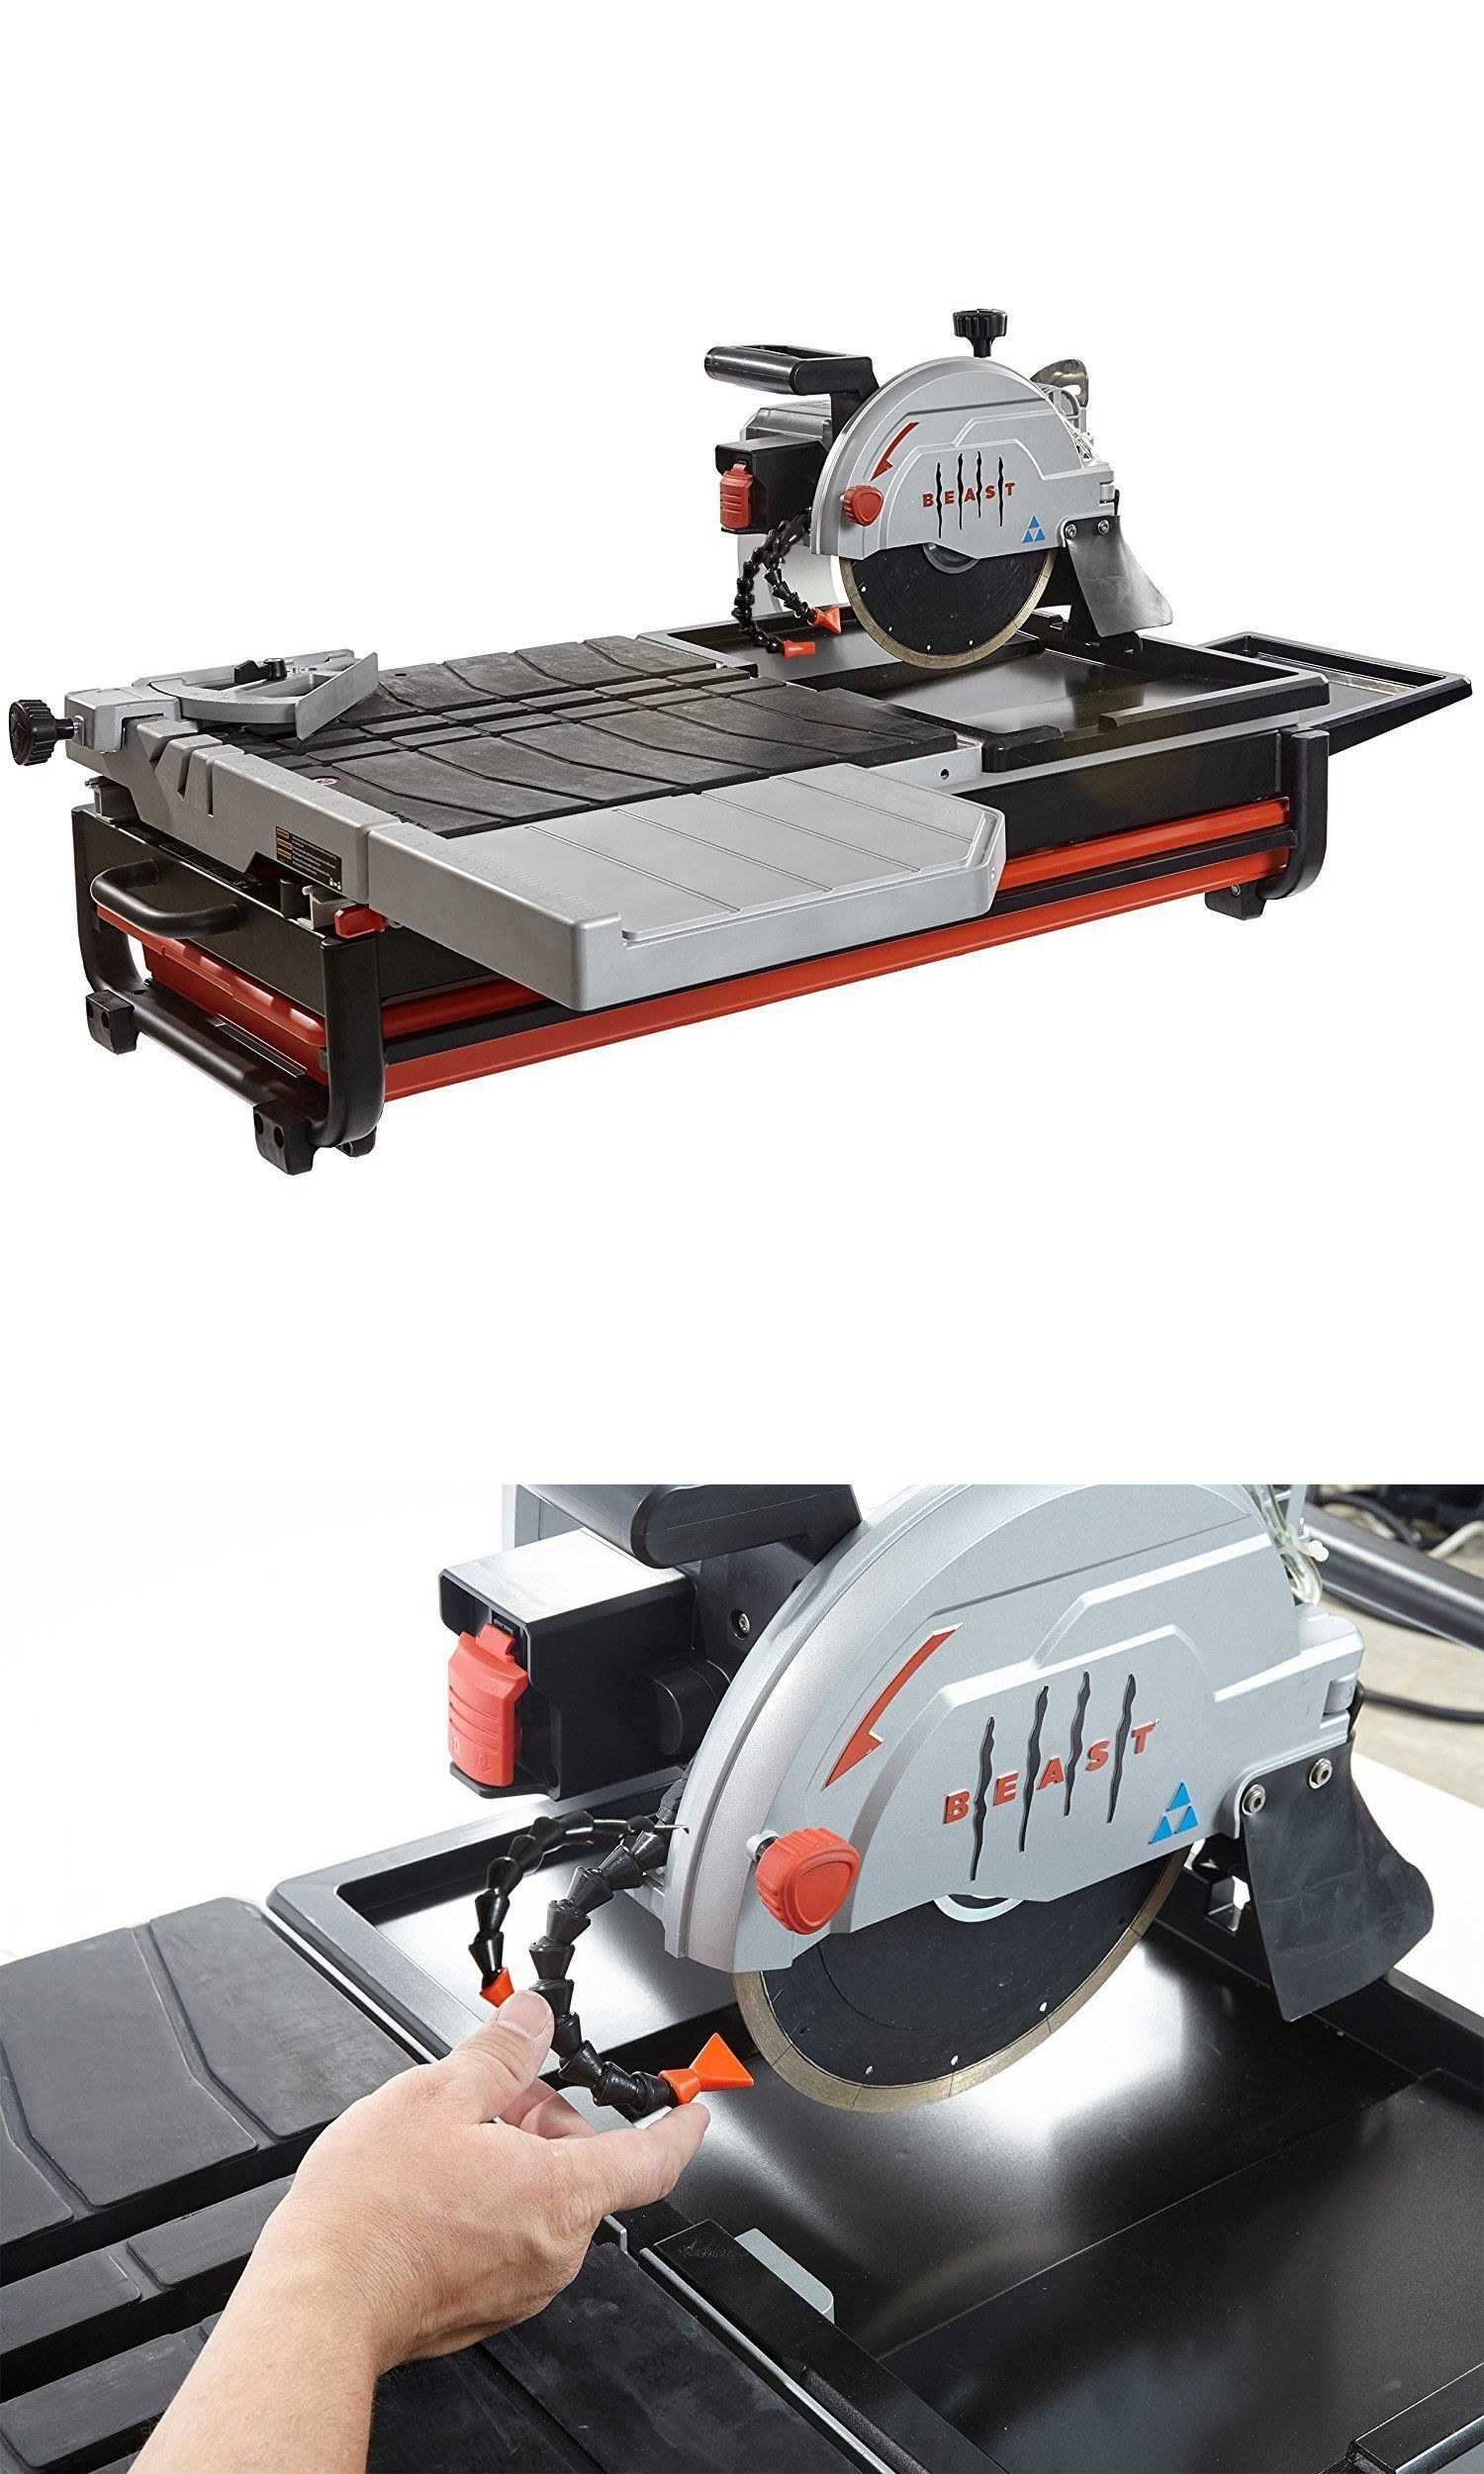 Tile Saws 122836 Lackmond Beast Professional 15 Amp Wet Tile Saw 10 Buy It Now Only 899 On Ebay Tile Saw Tile Saws Ebay